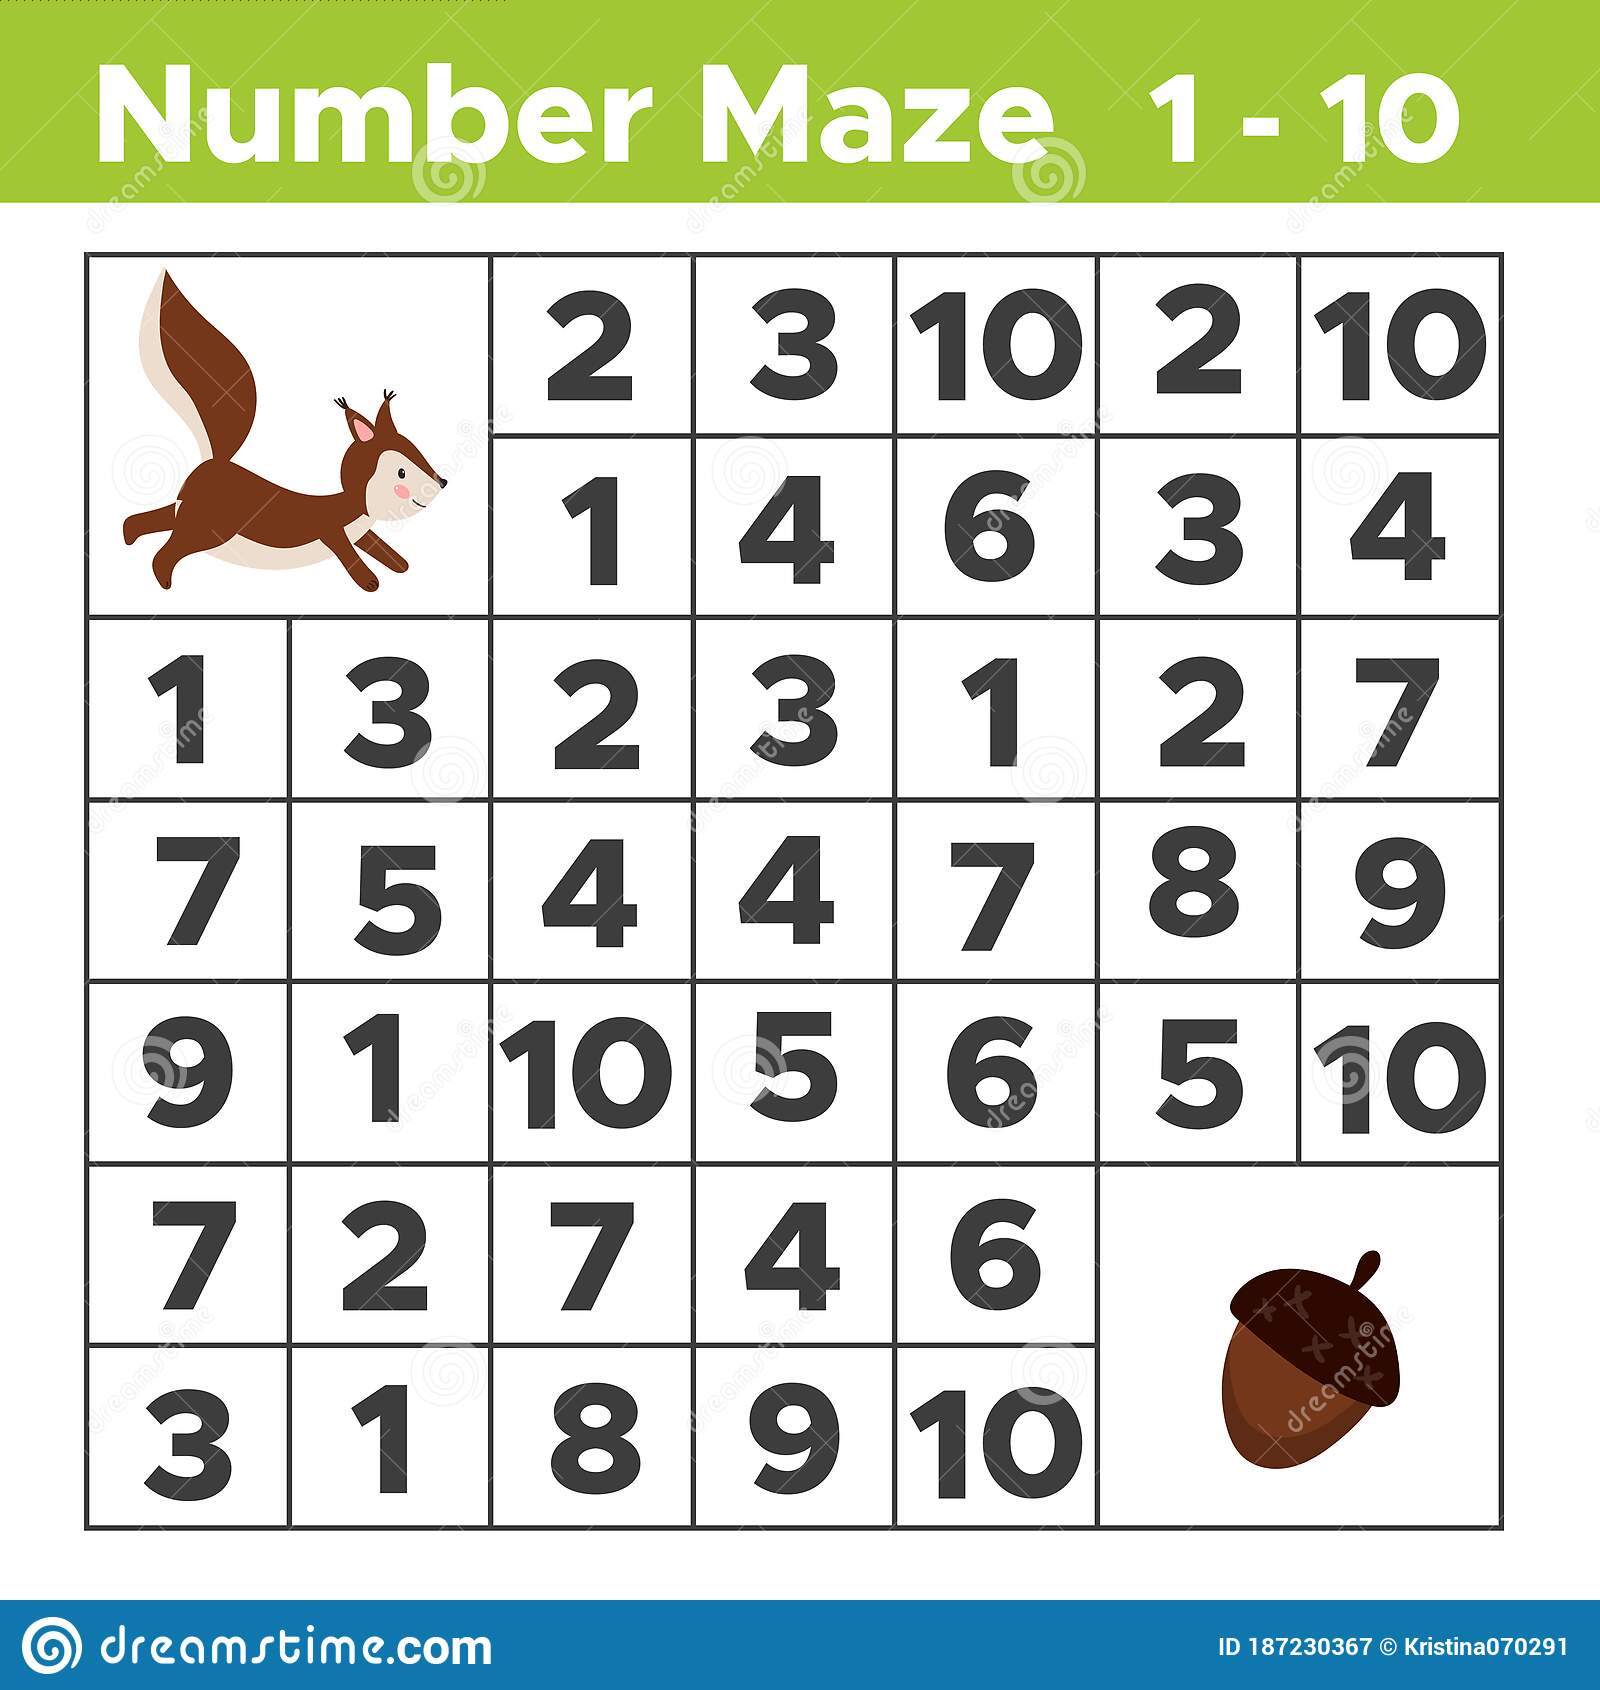 Number Maze Math Puzzle Game For Children Help The